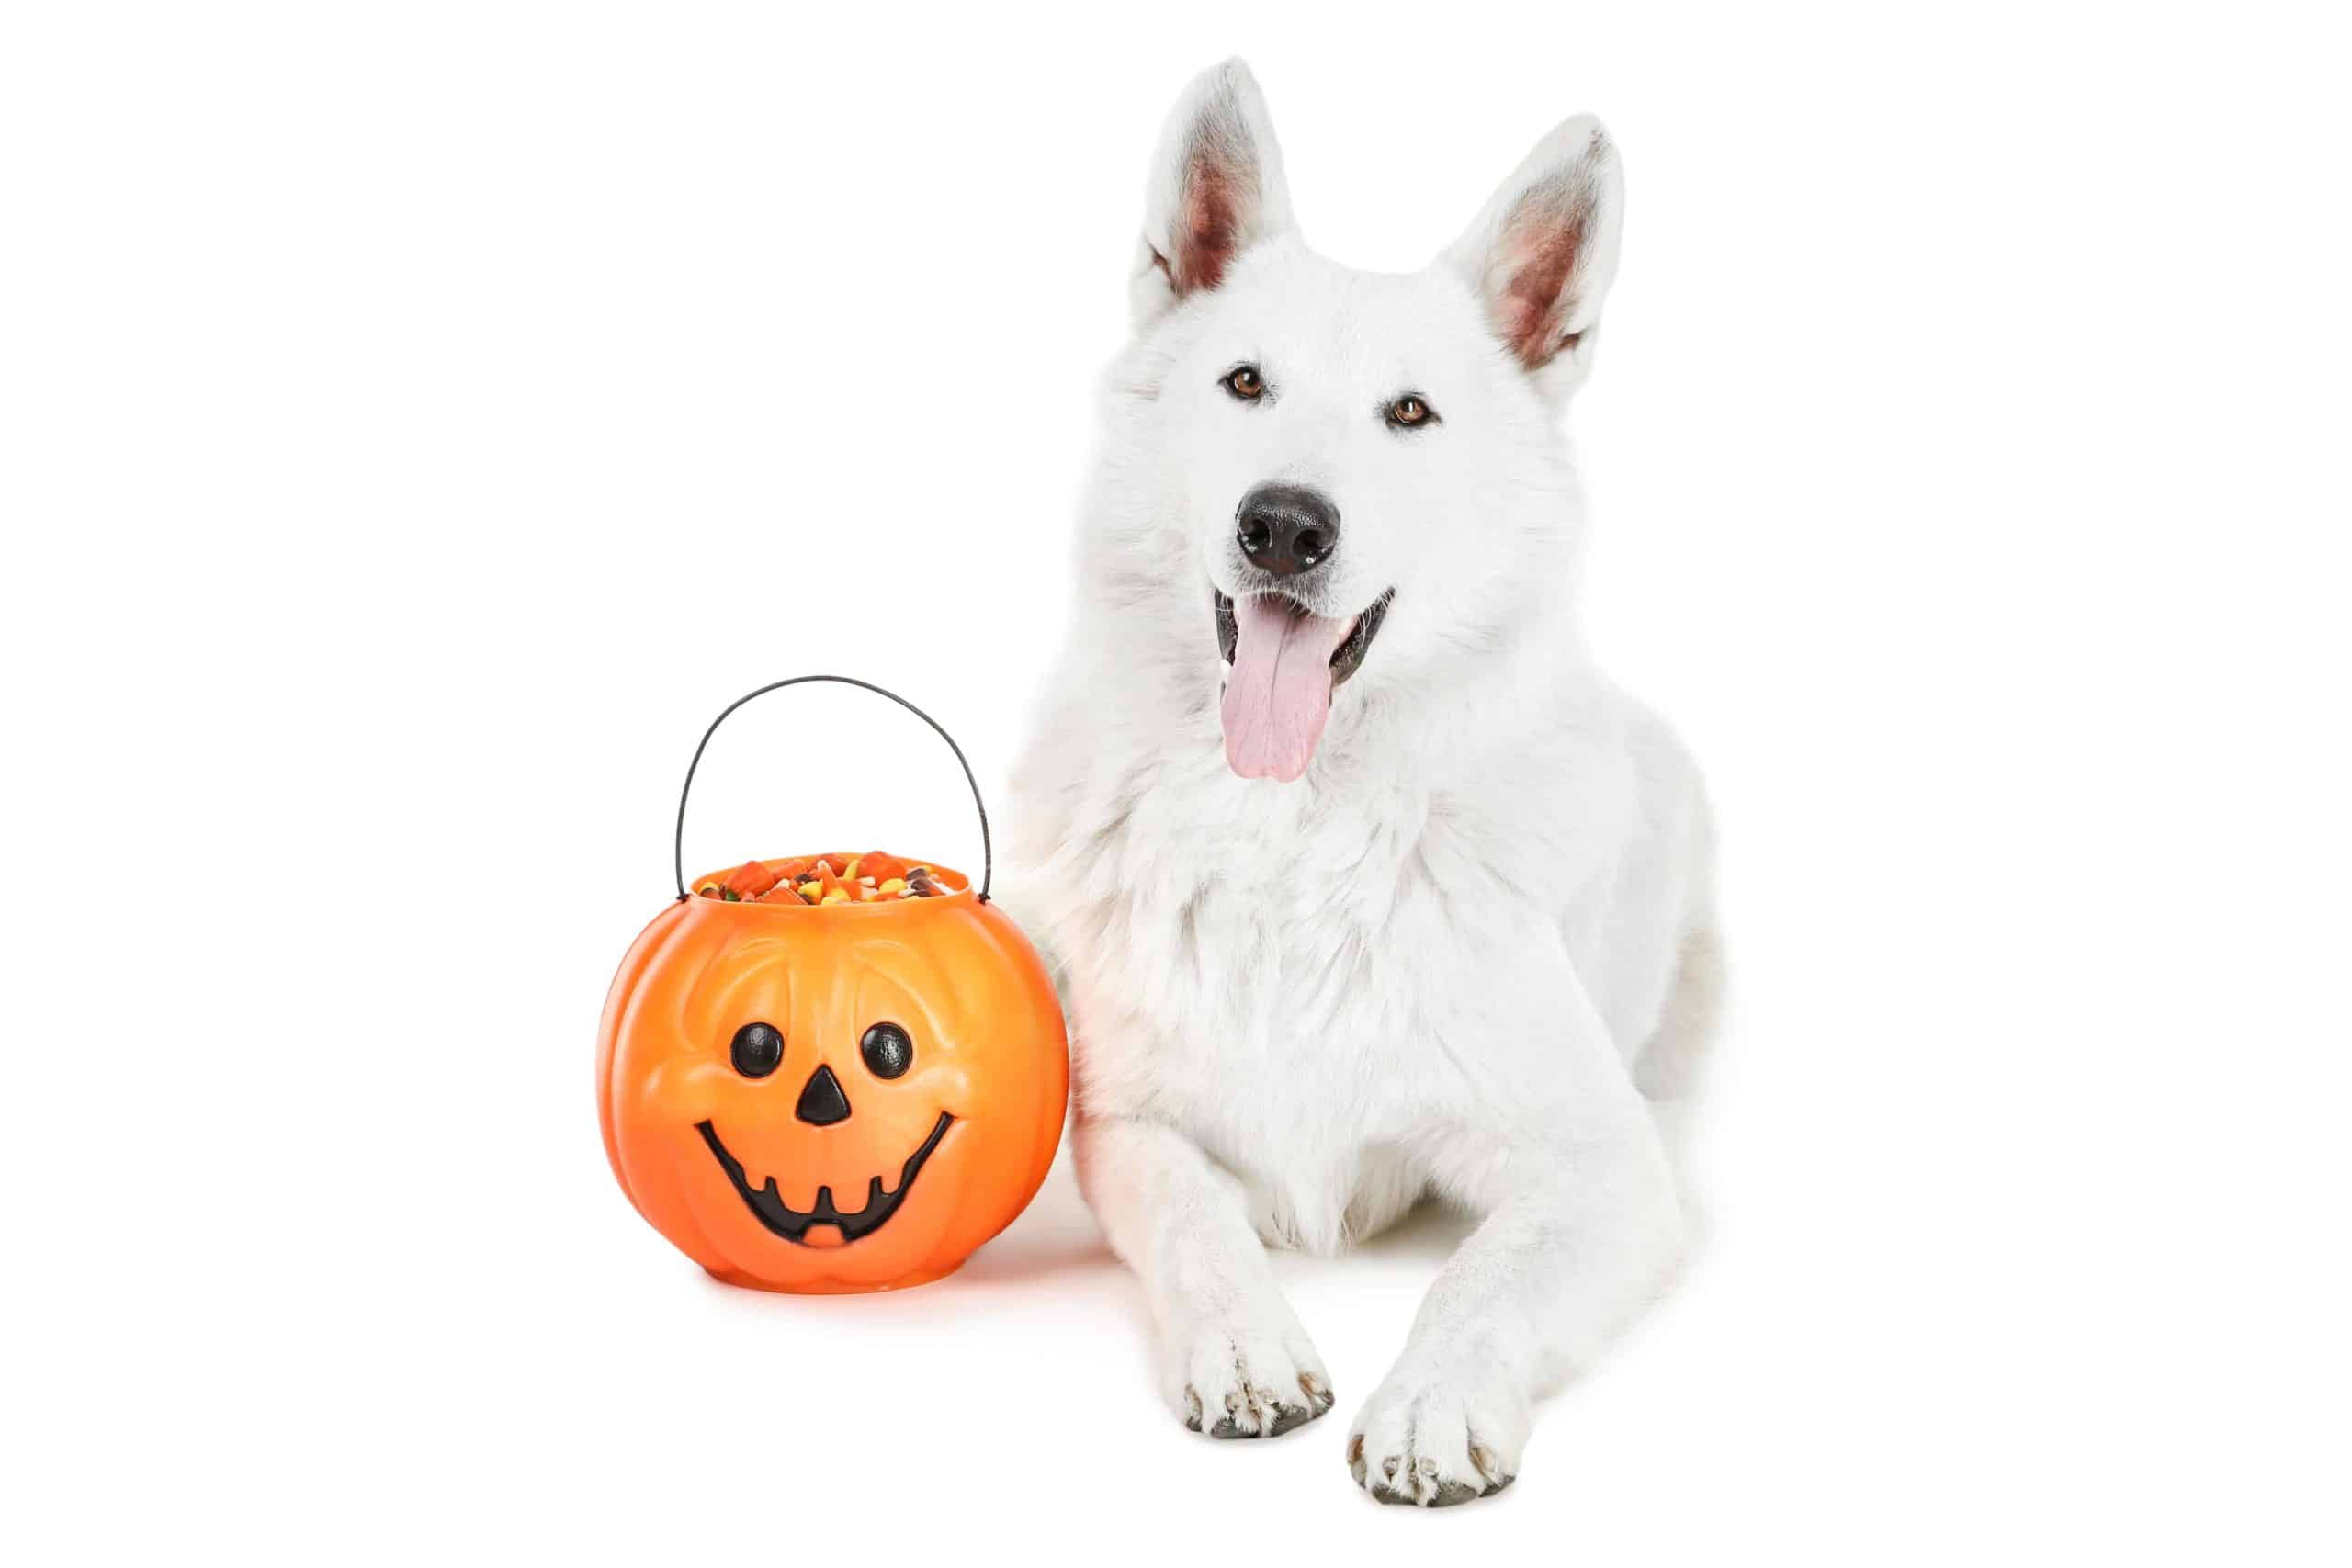 White German Shepherd sits next to Halloween pumpkin filled with candy corn. Can dogs eat candy corn? Small amounts are safe. But watch for ingredients like sugar substitute xylitol and dyes that can be dangerous.